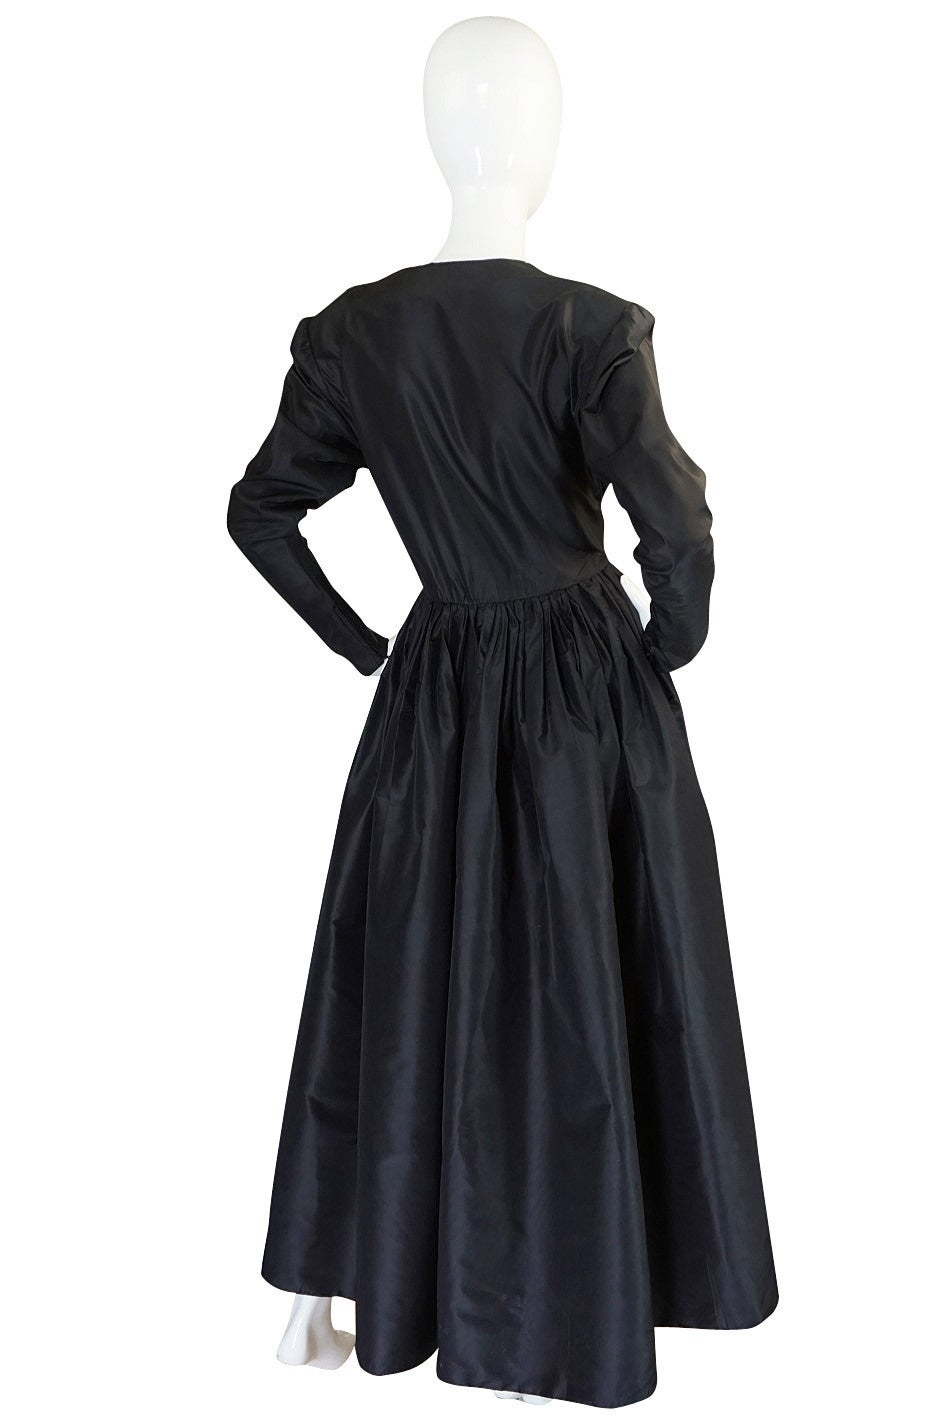 Exceptional 1970s Yves Saint Laurent Black Silk Dress In Excellent Condition For Sale In Toronto, CA